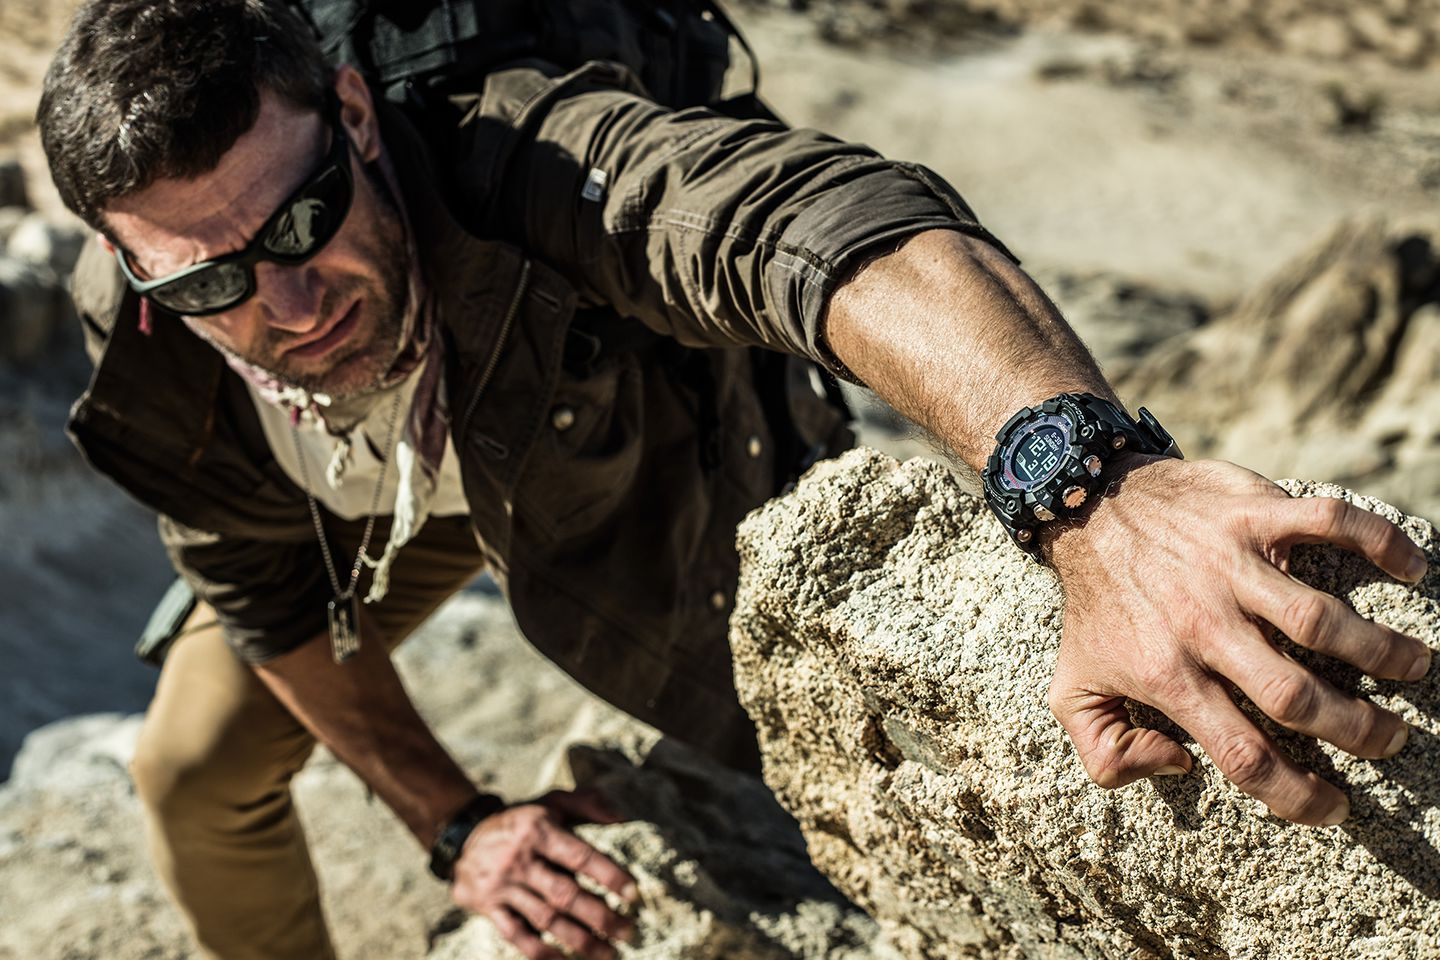 Best rugged smartwatches for hiking and outdoors